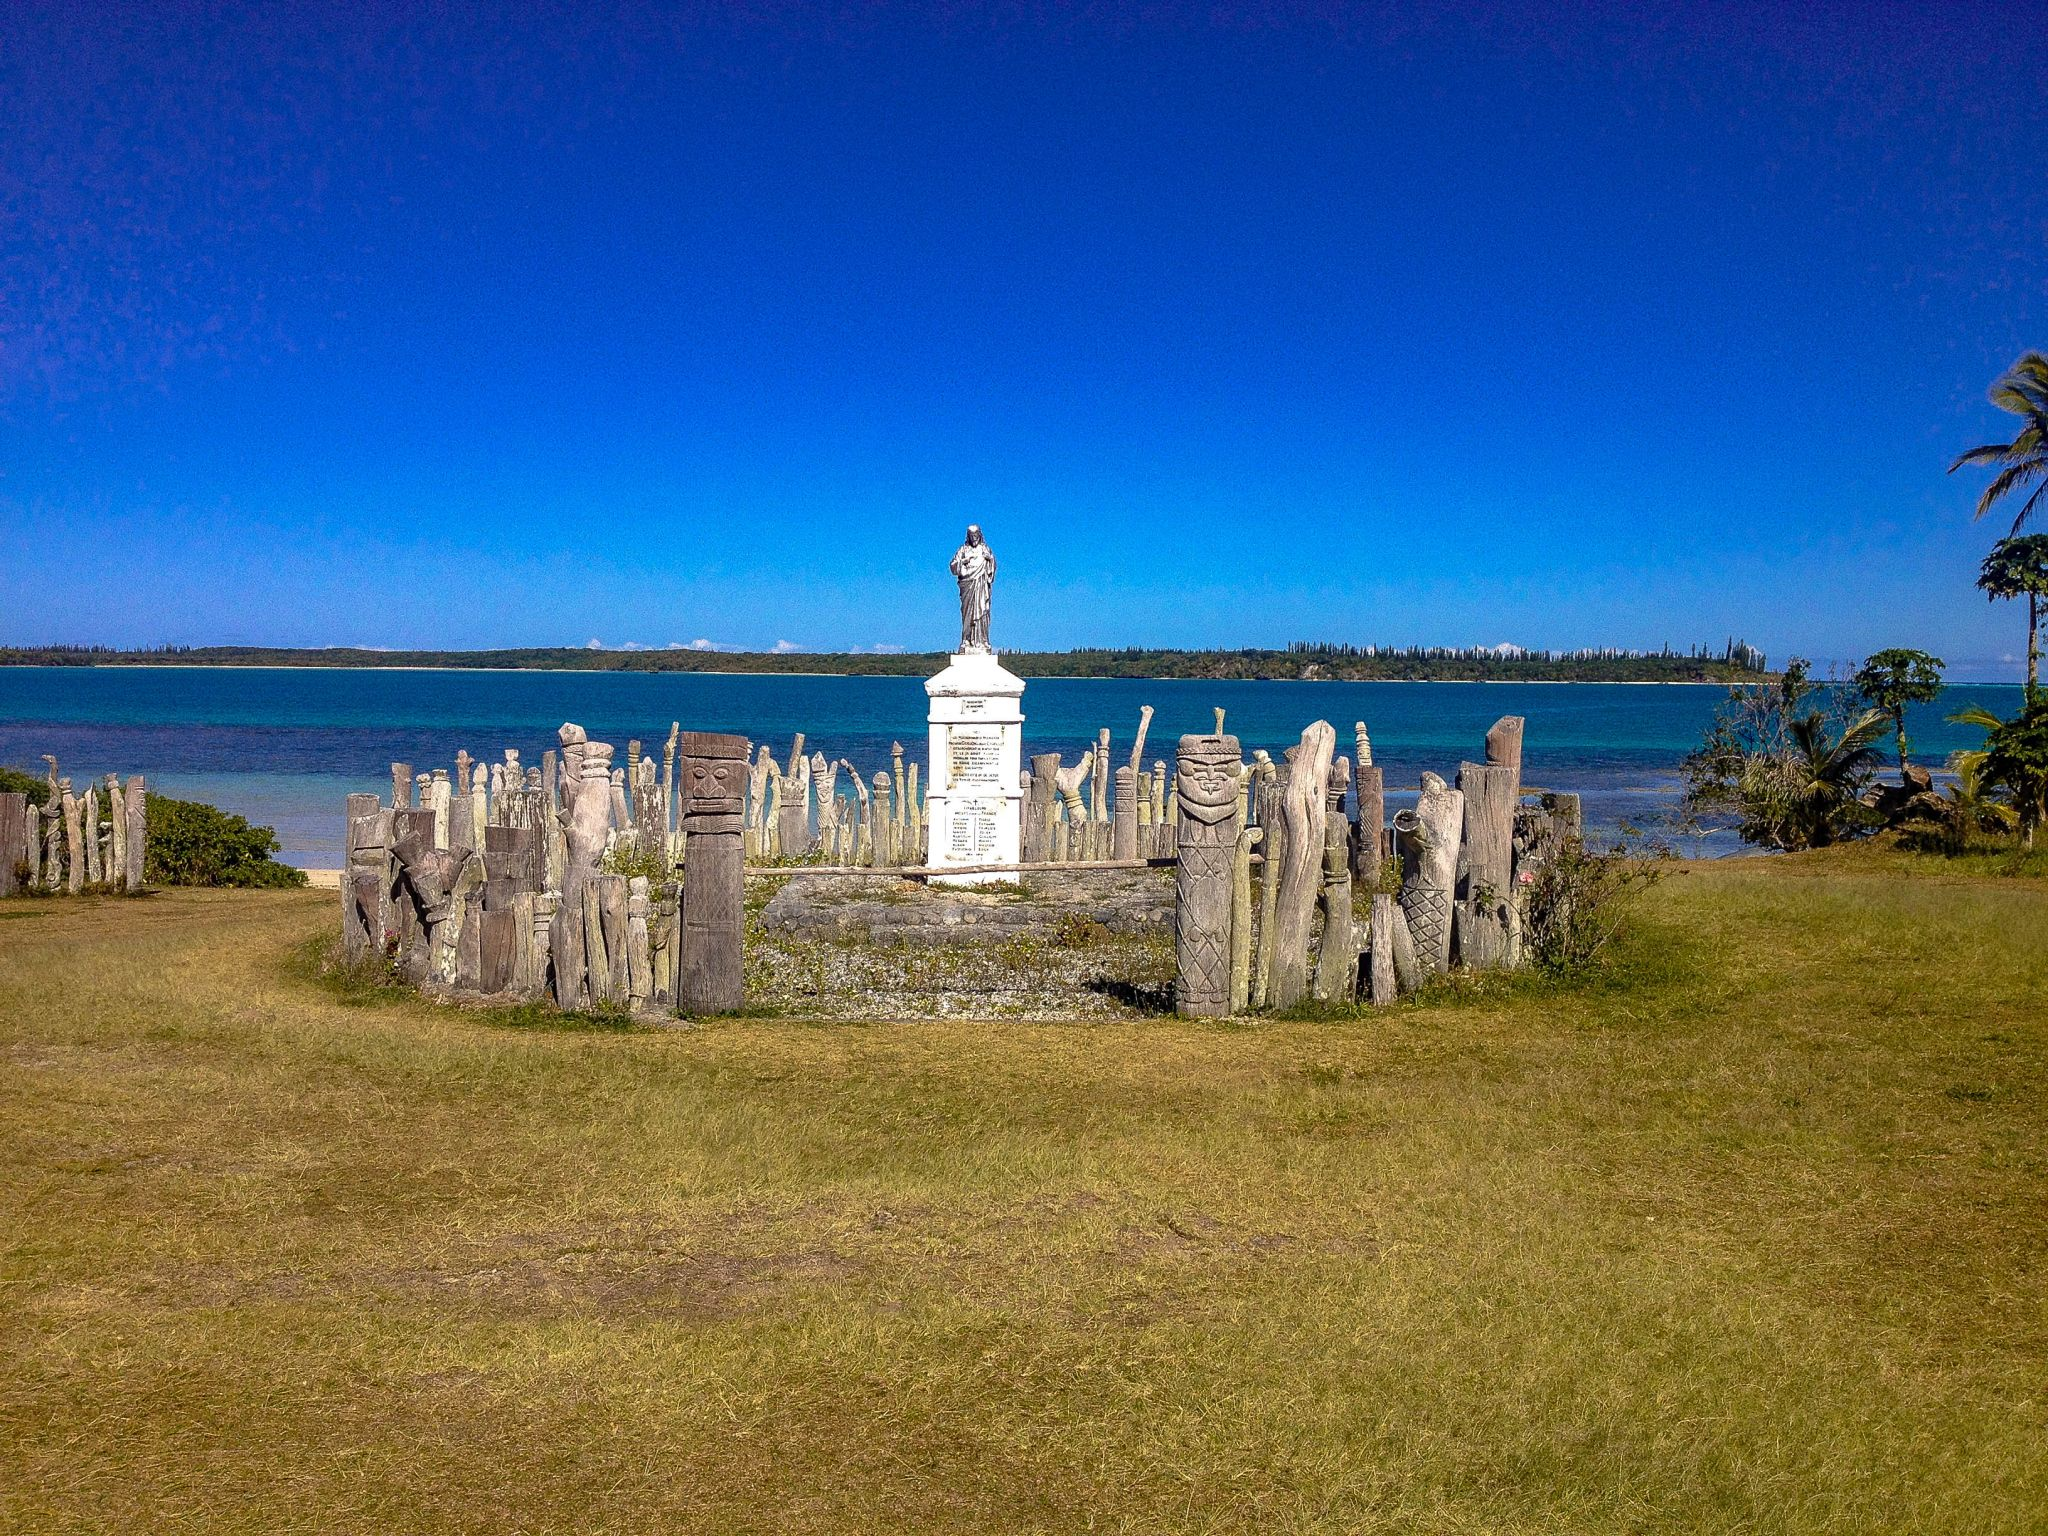 Statue of St. Maurice, New Caledonia